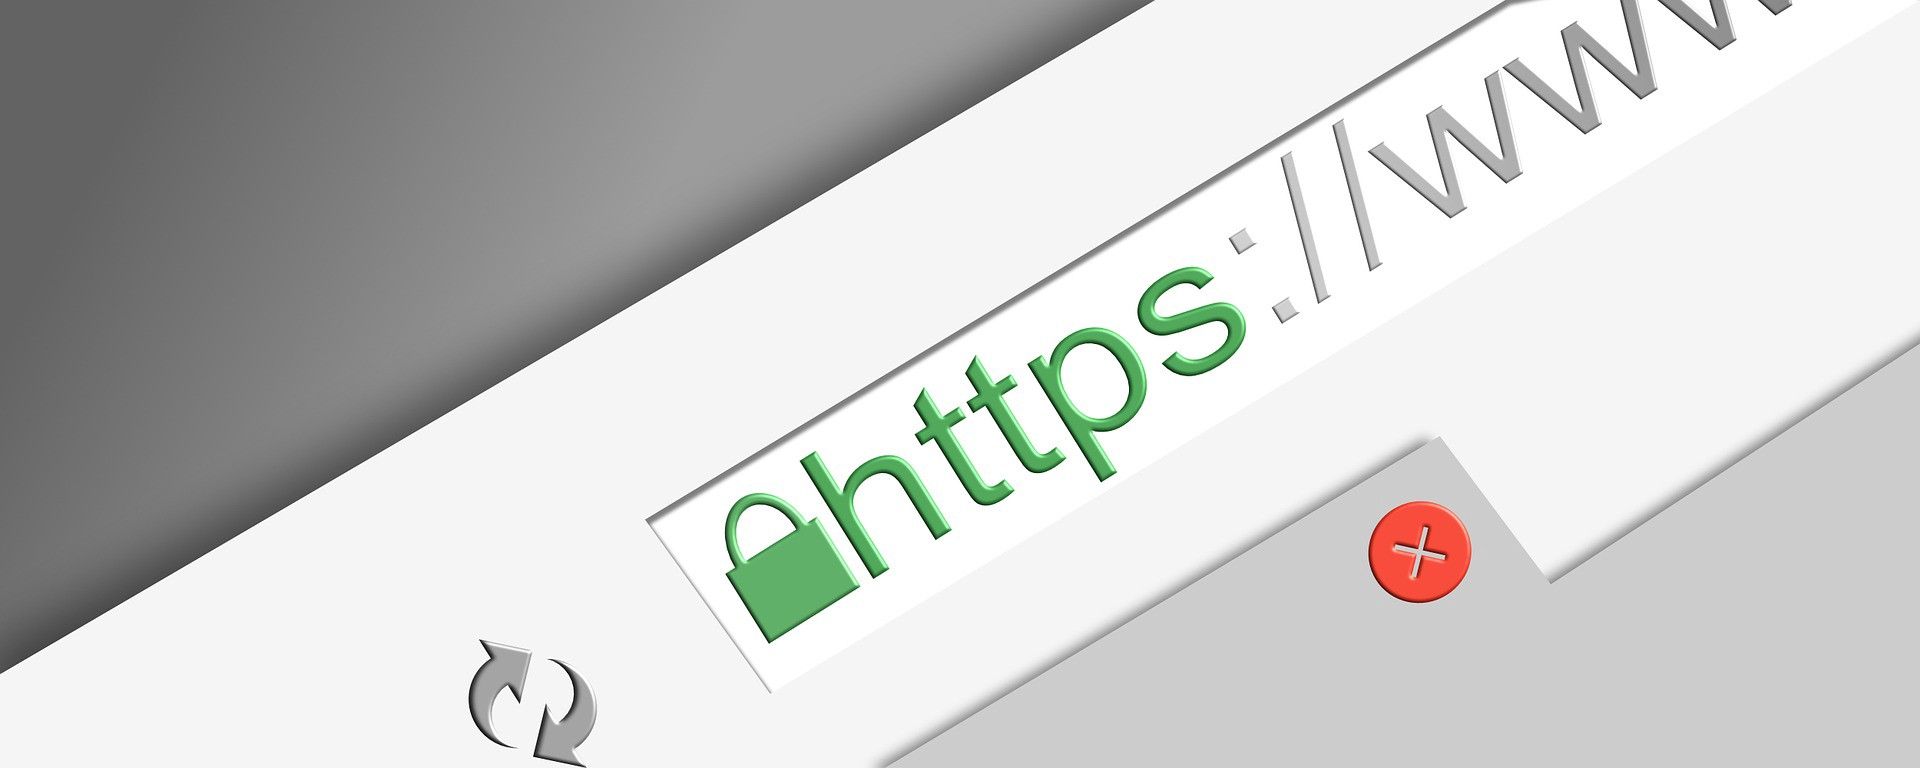 Set-up SSL in NodeJS and Express using OpenSSL - By Abdus